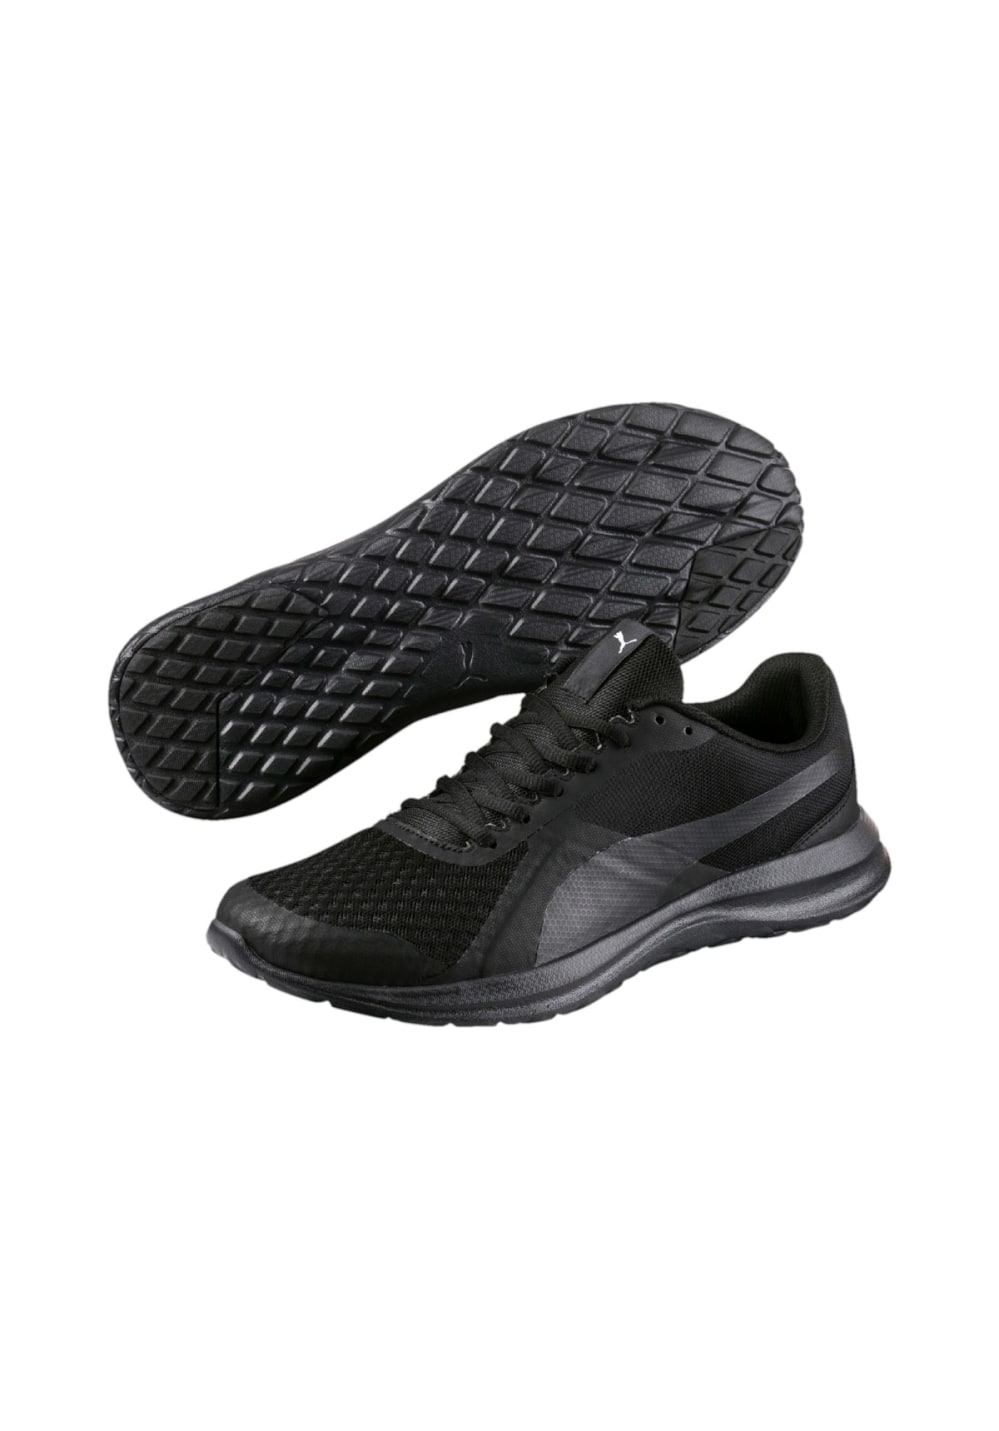 reputable site 8fd4b 4e88a Puma Flex T1 - Running shoes - Black